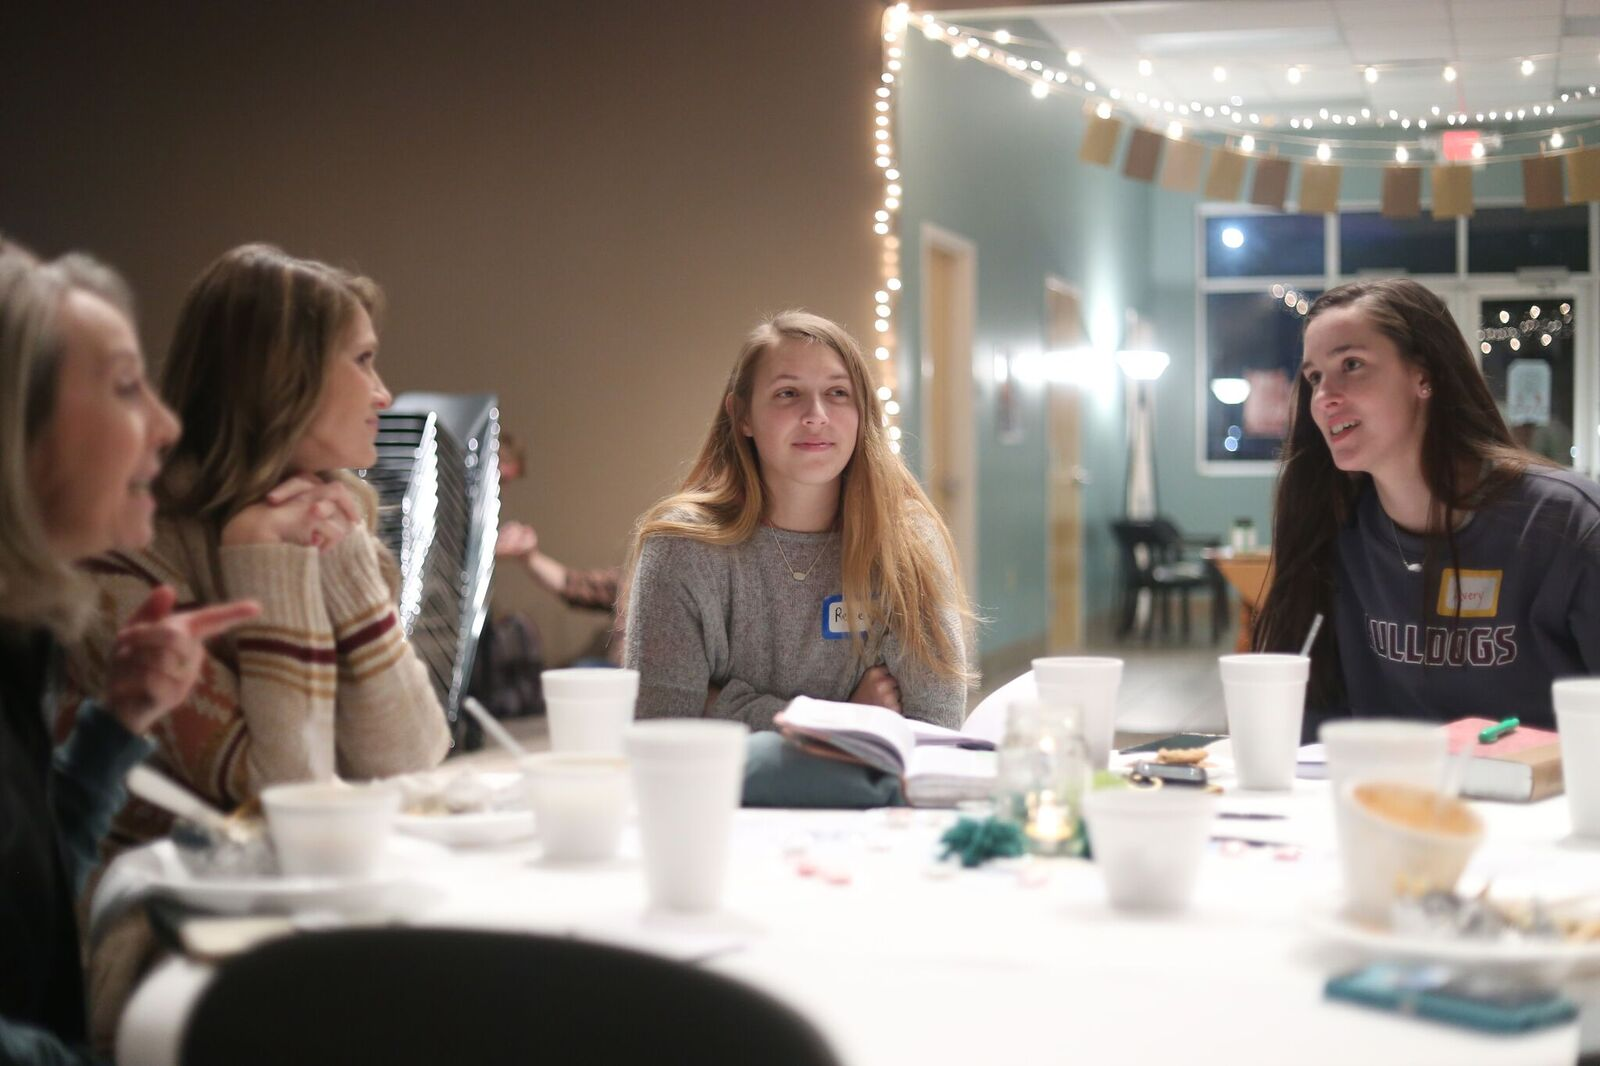 Women in Ministry Circle - Facilitated by senior pastor, Tara Beth Leach, and meeting every other month, this is for women called to pastoral ministry in the church.